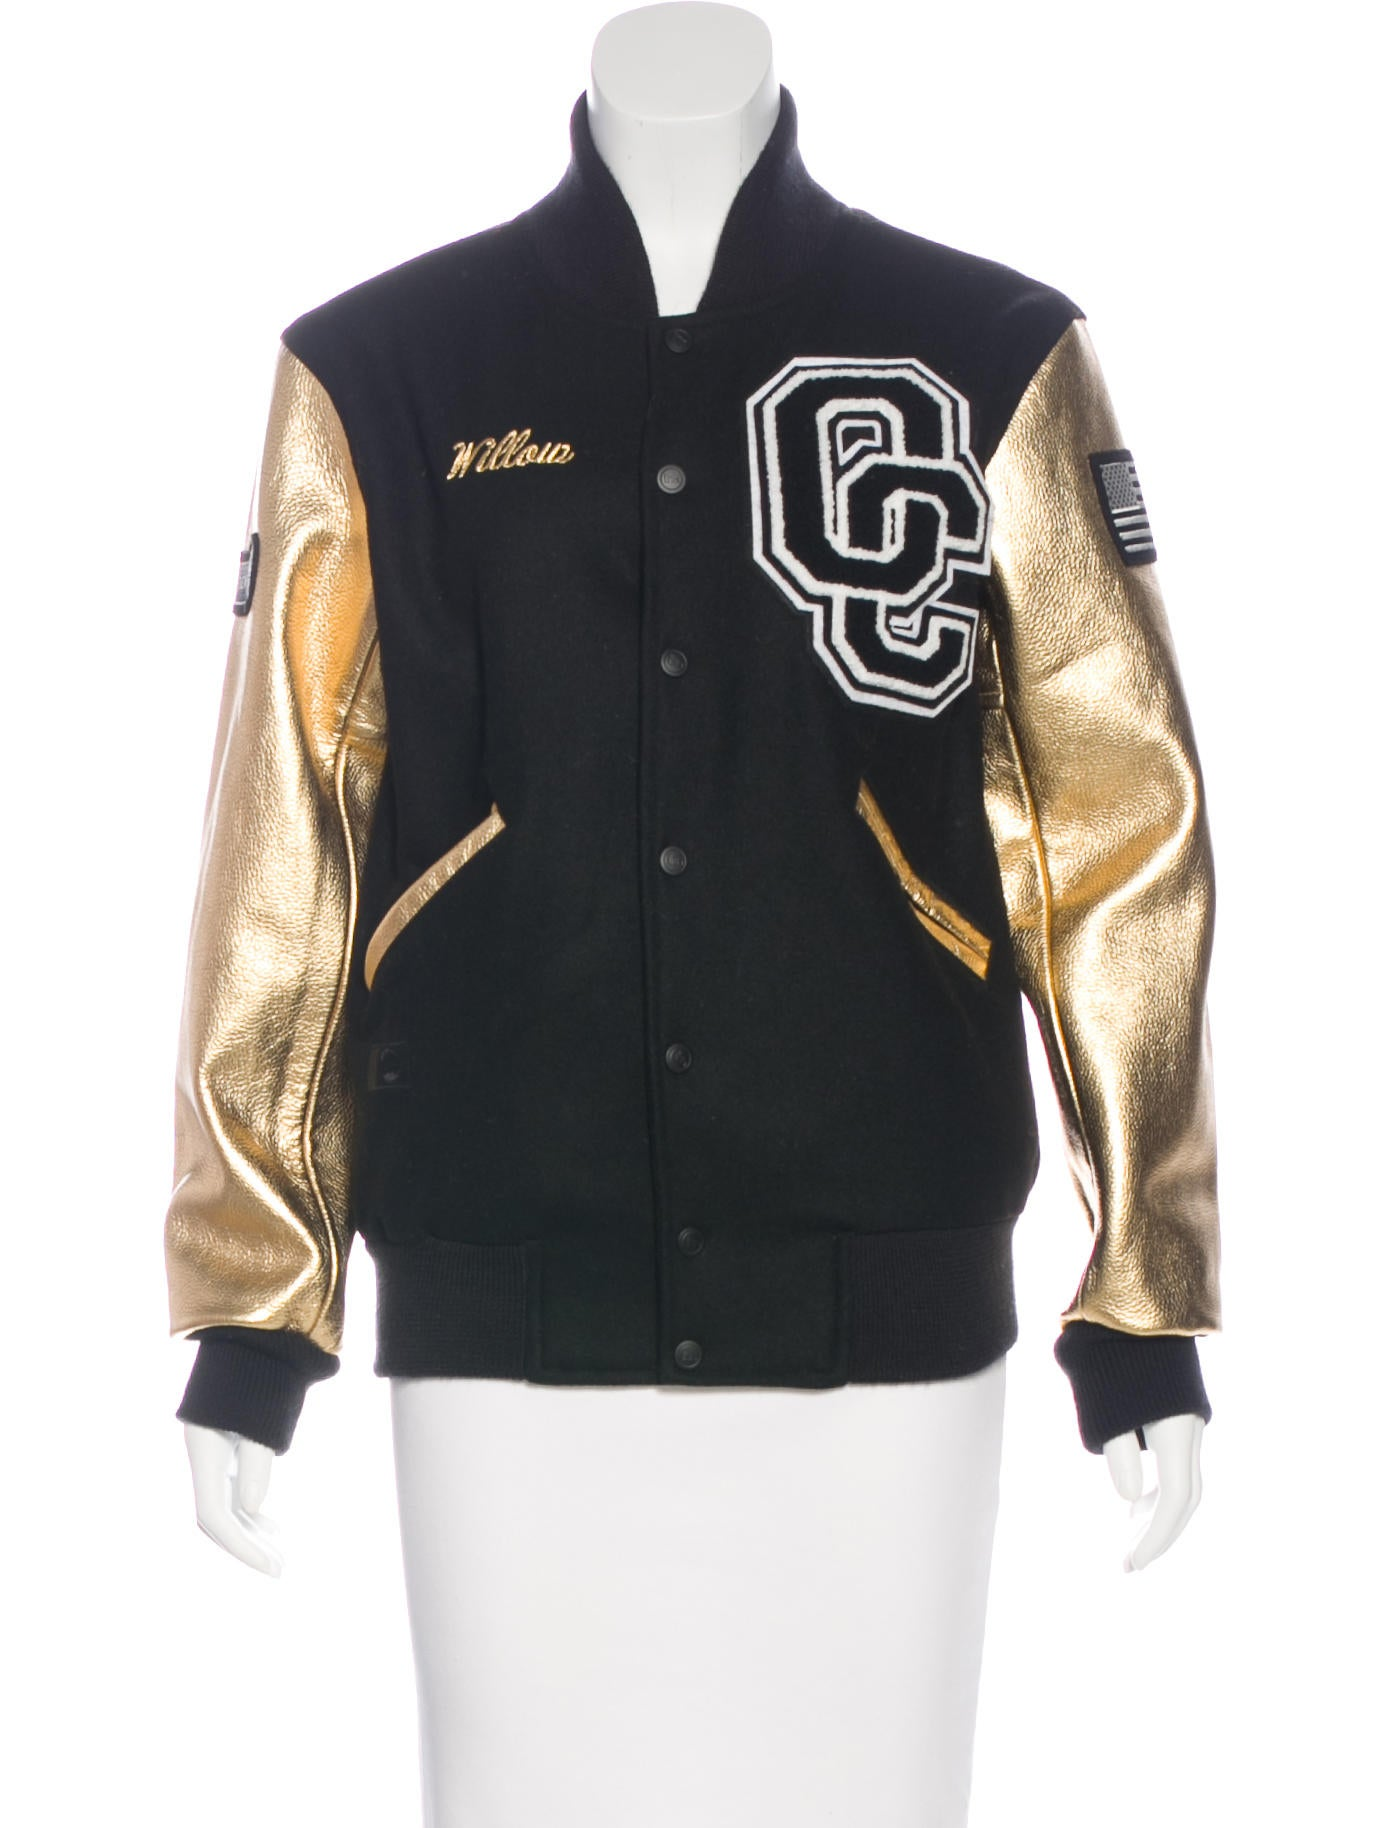 Wool leather varsity jackets